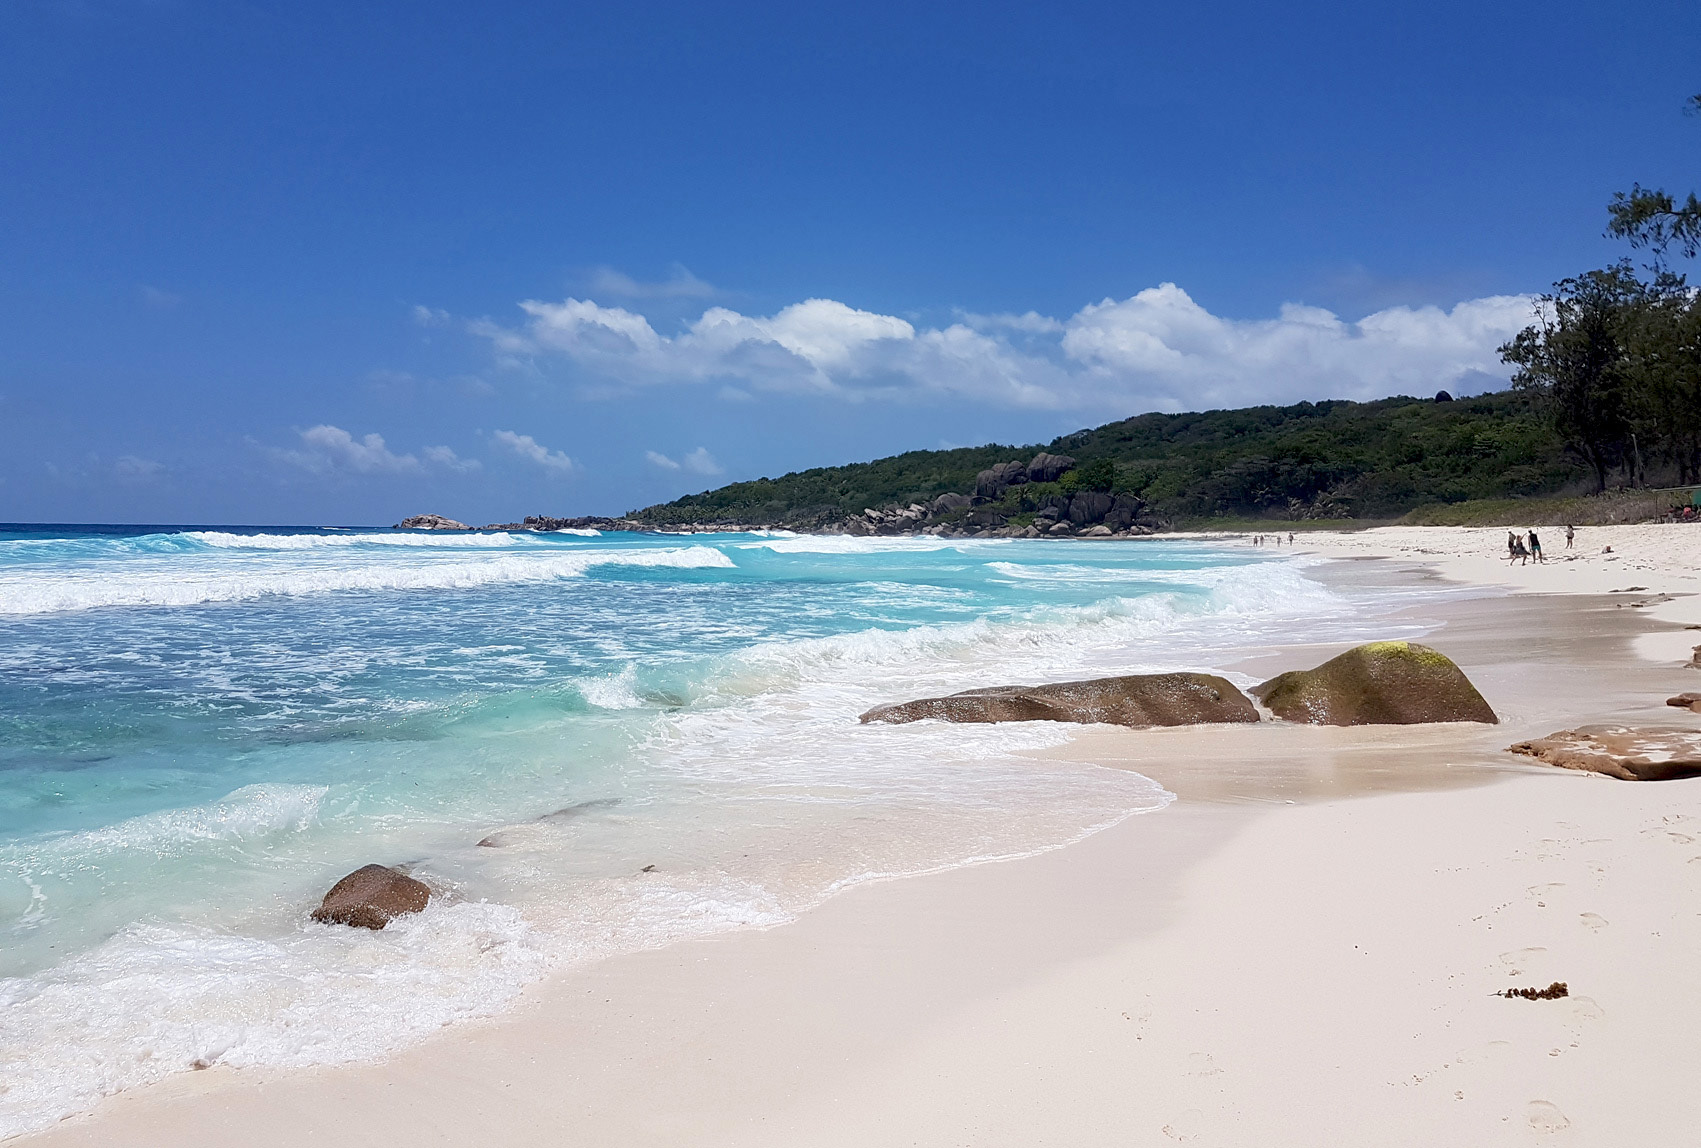 Another view of Grand Anse, La Digue, Seychelles